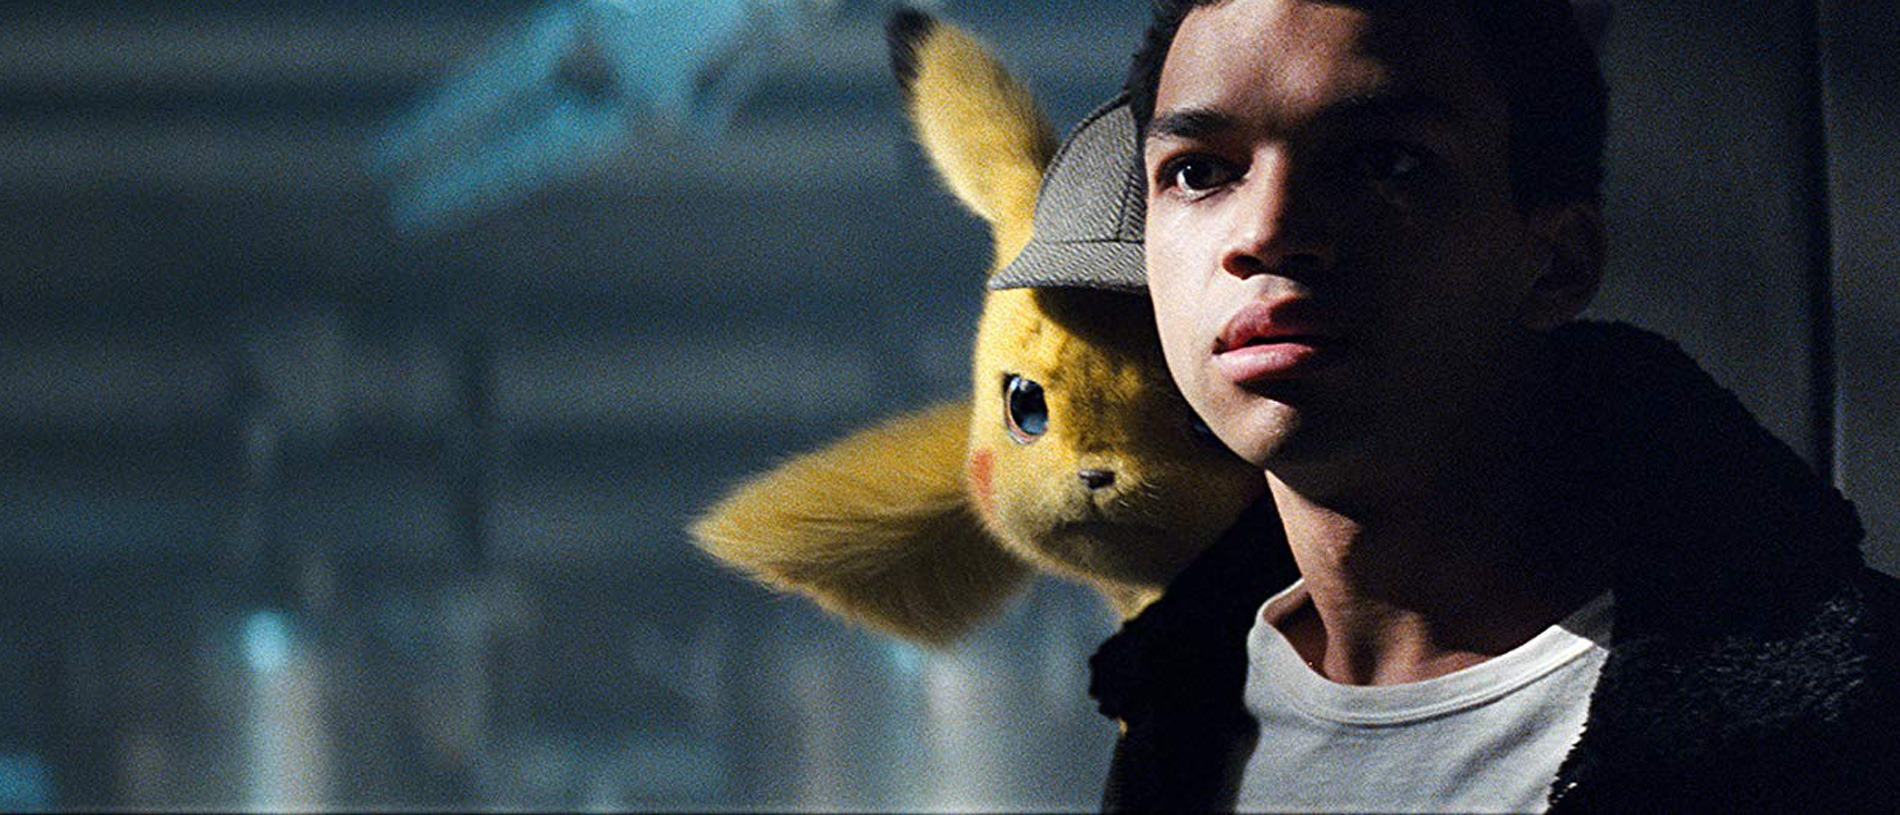 Detective Pikachu is in our top ten worst films of 2019